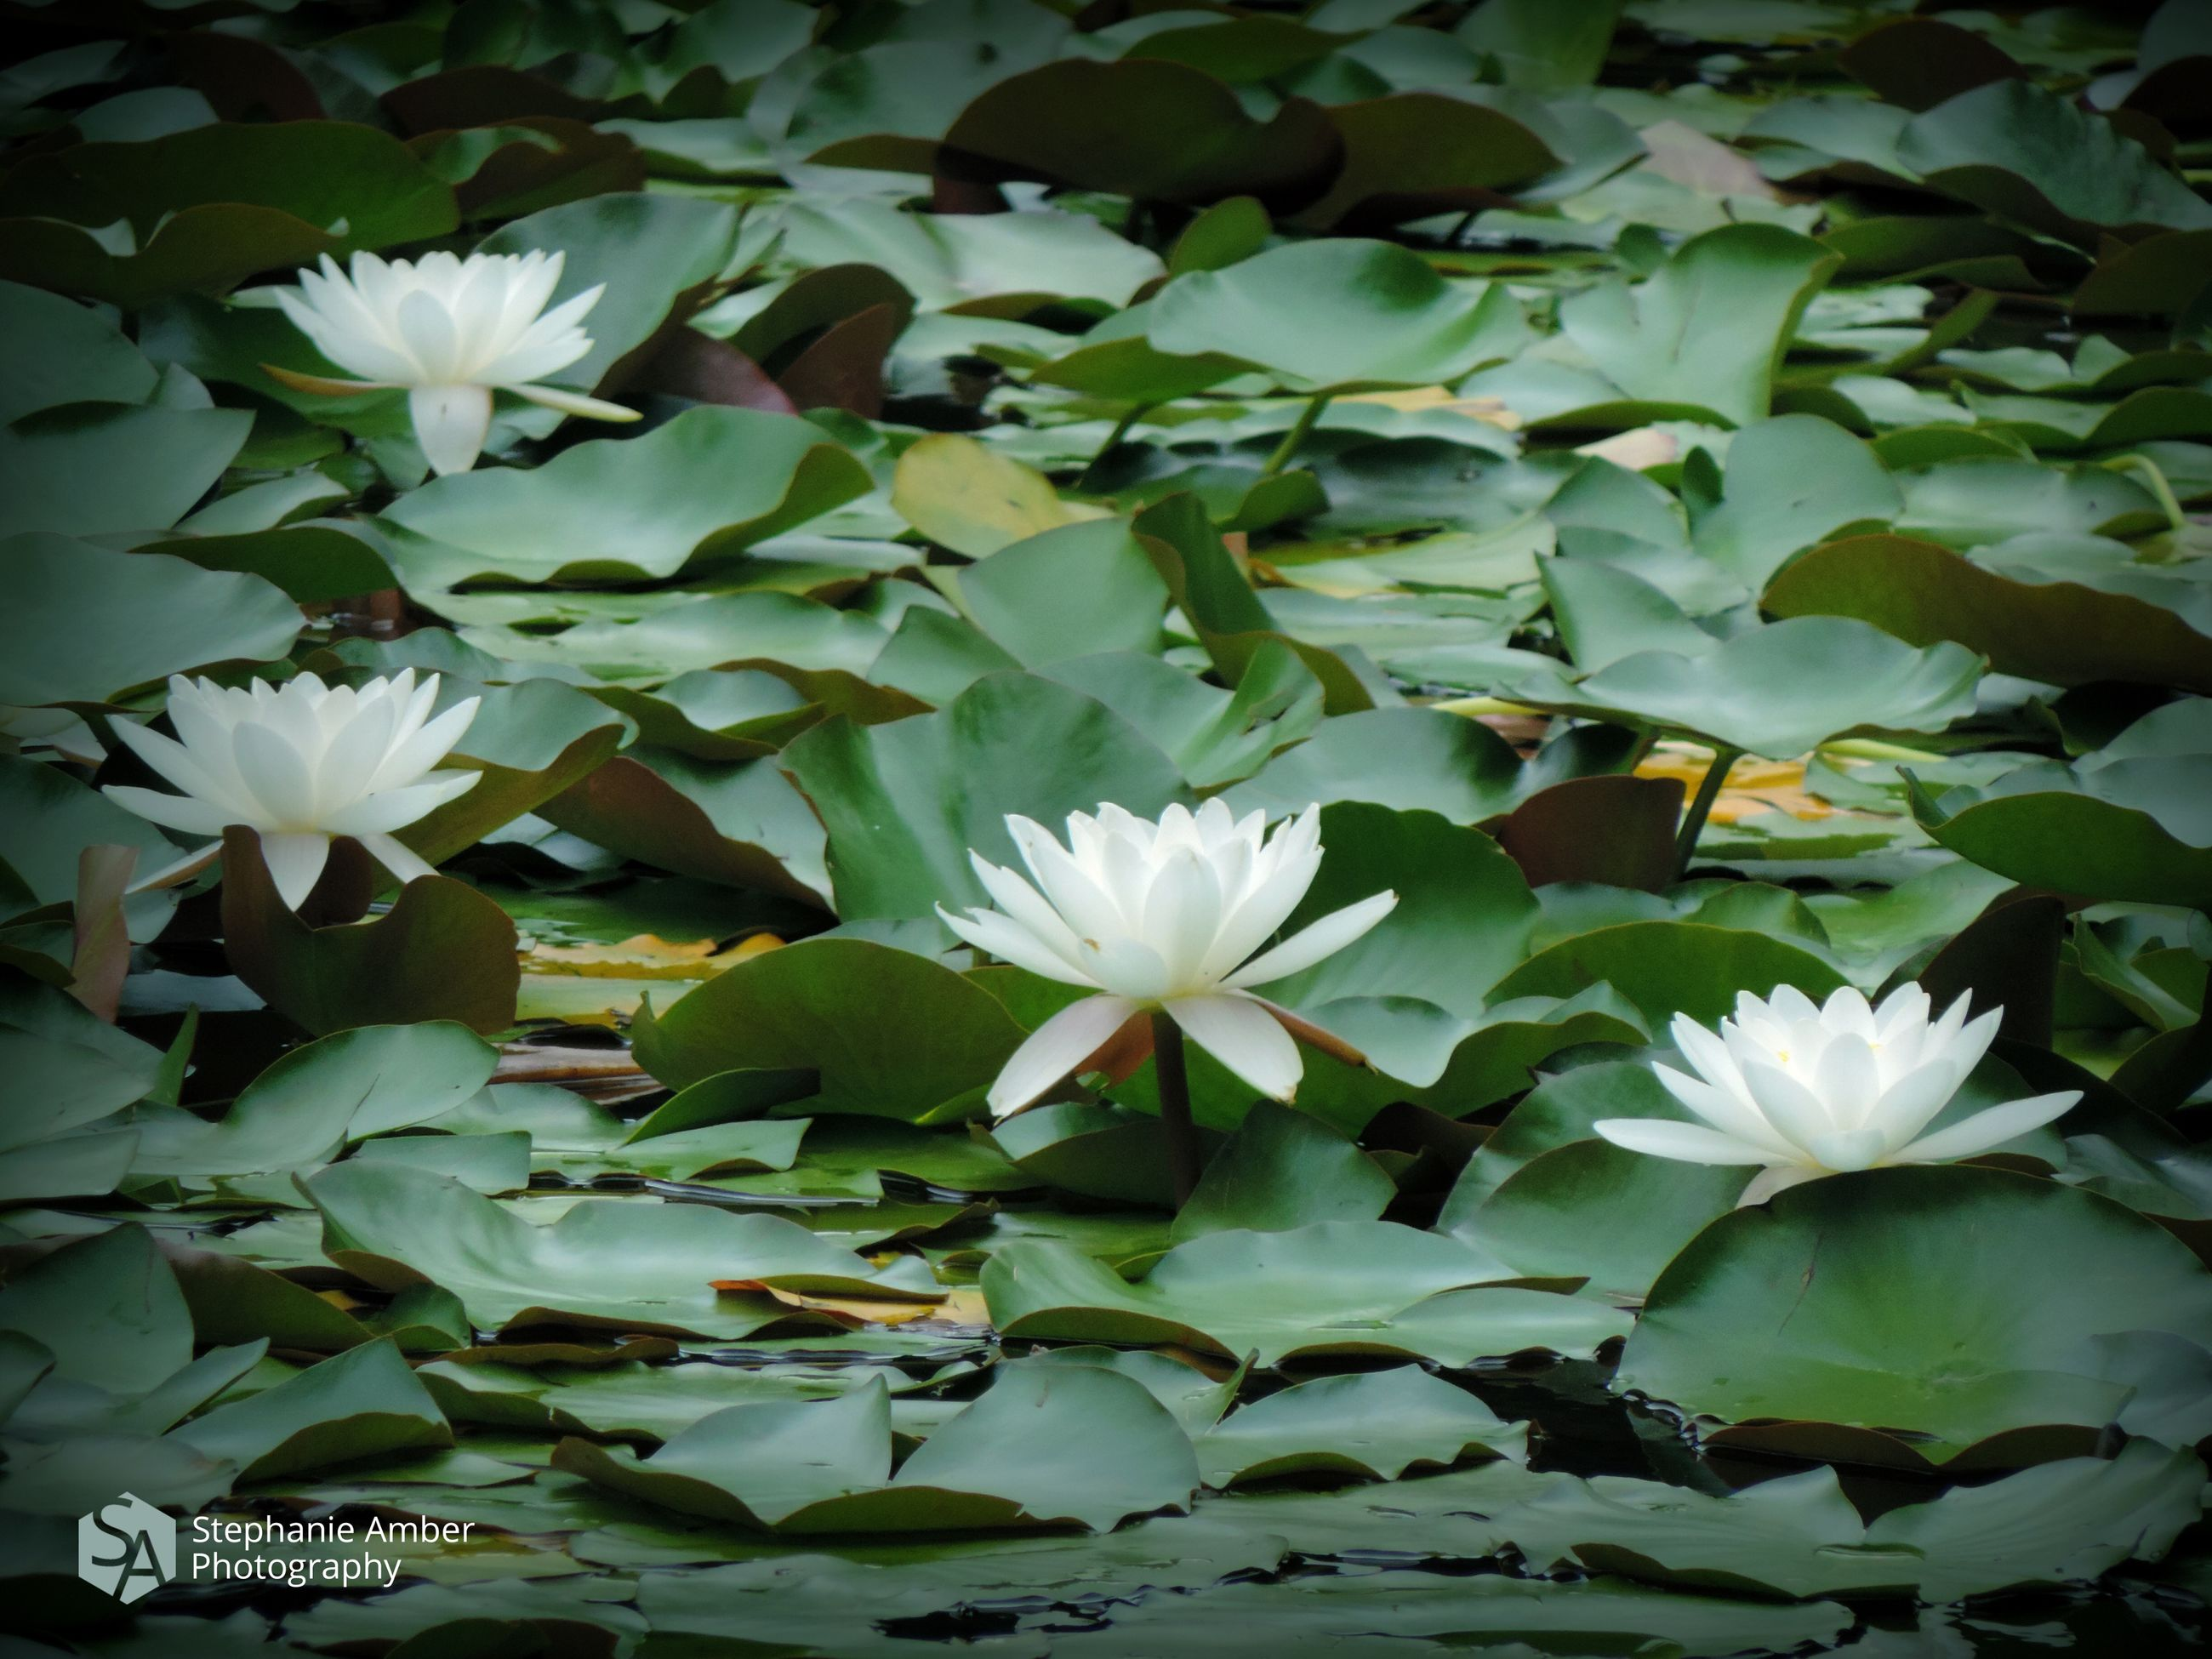 flower, flowering plant, beauty in nature, plant, freshness, vulnerability, fragility, petal, leaf, nature, plant part, growth, white color, close-up, inflorescence, flower head, day, no people, lake, water lily, outdoors, floating on water